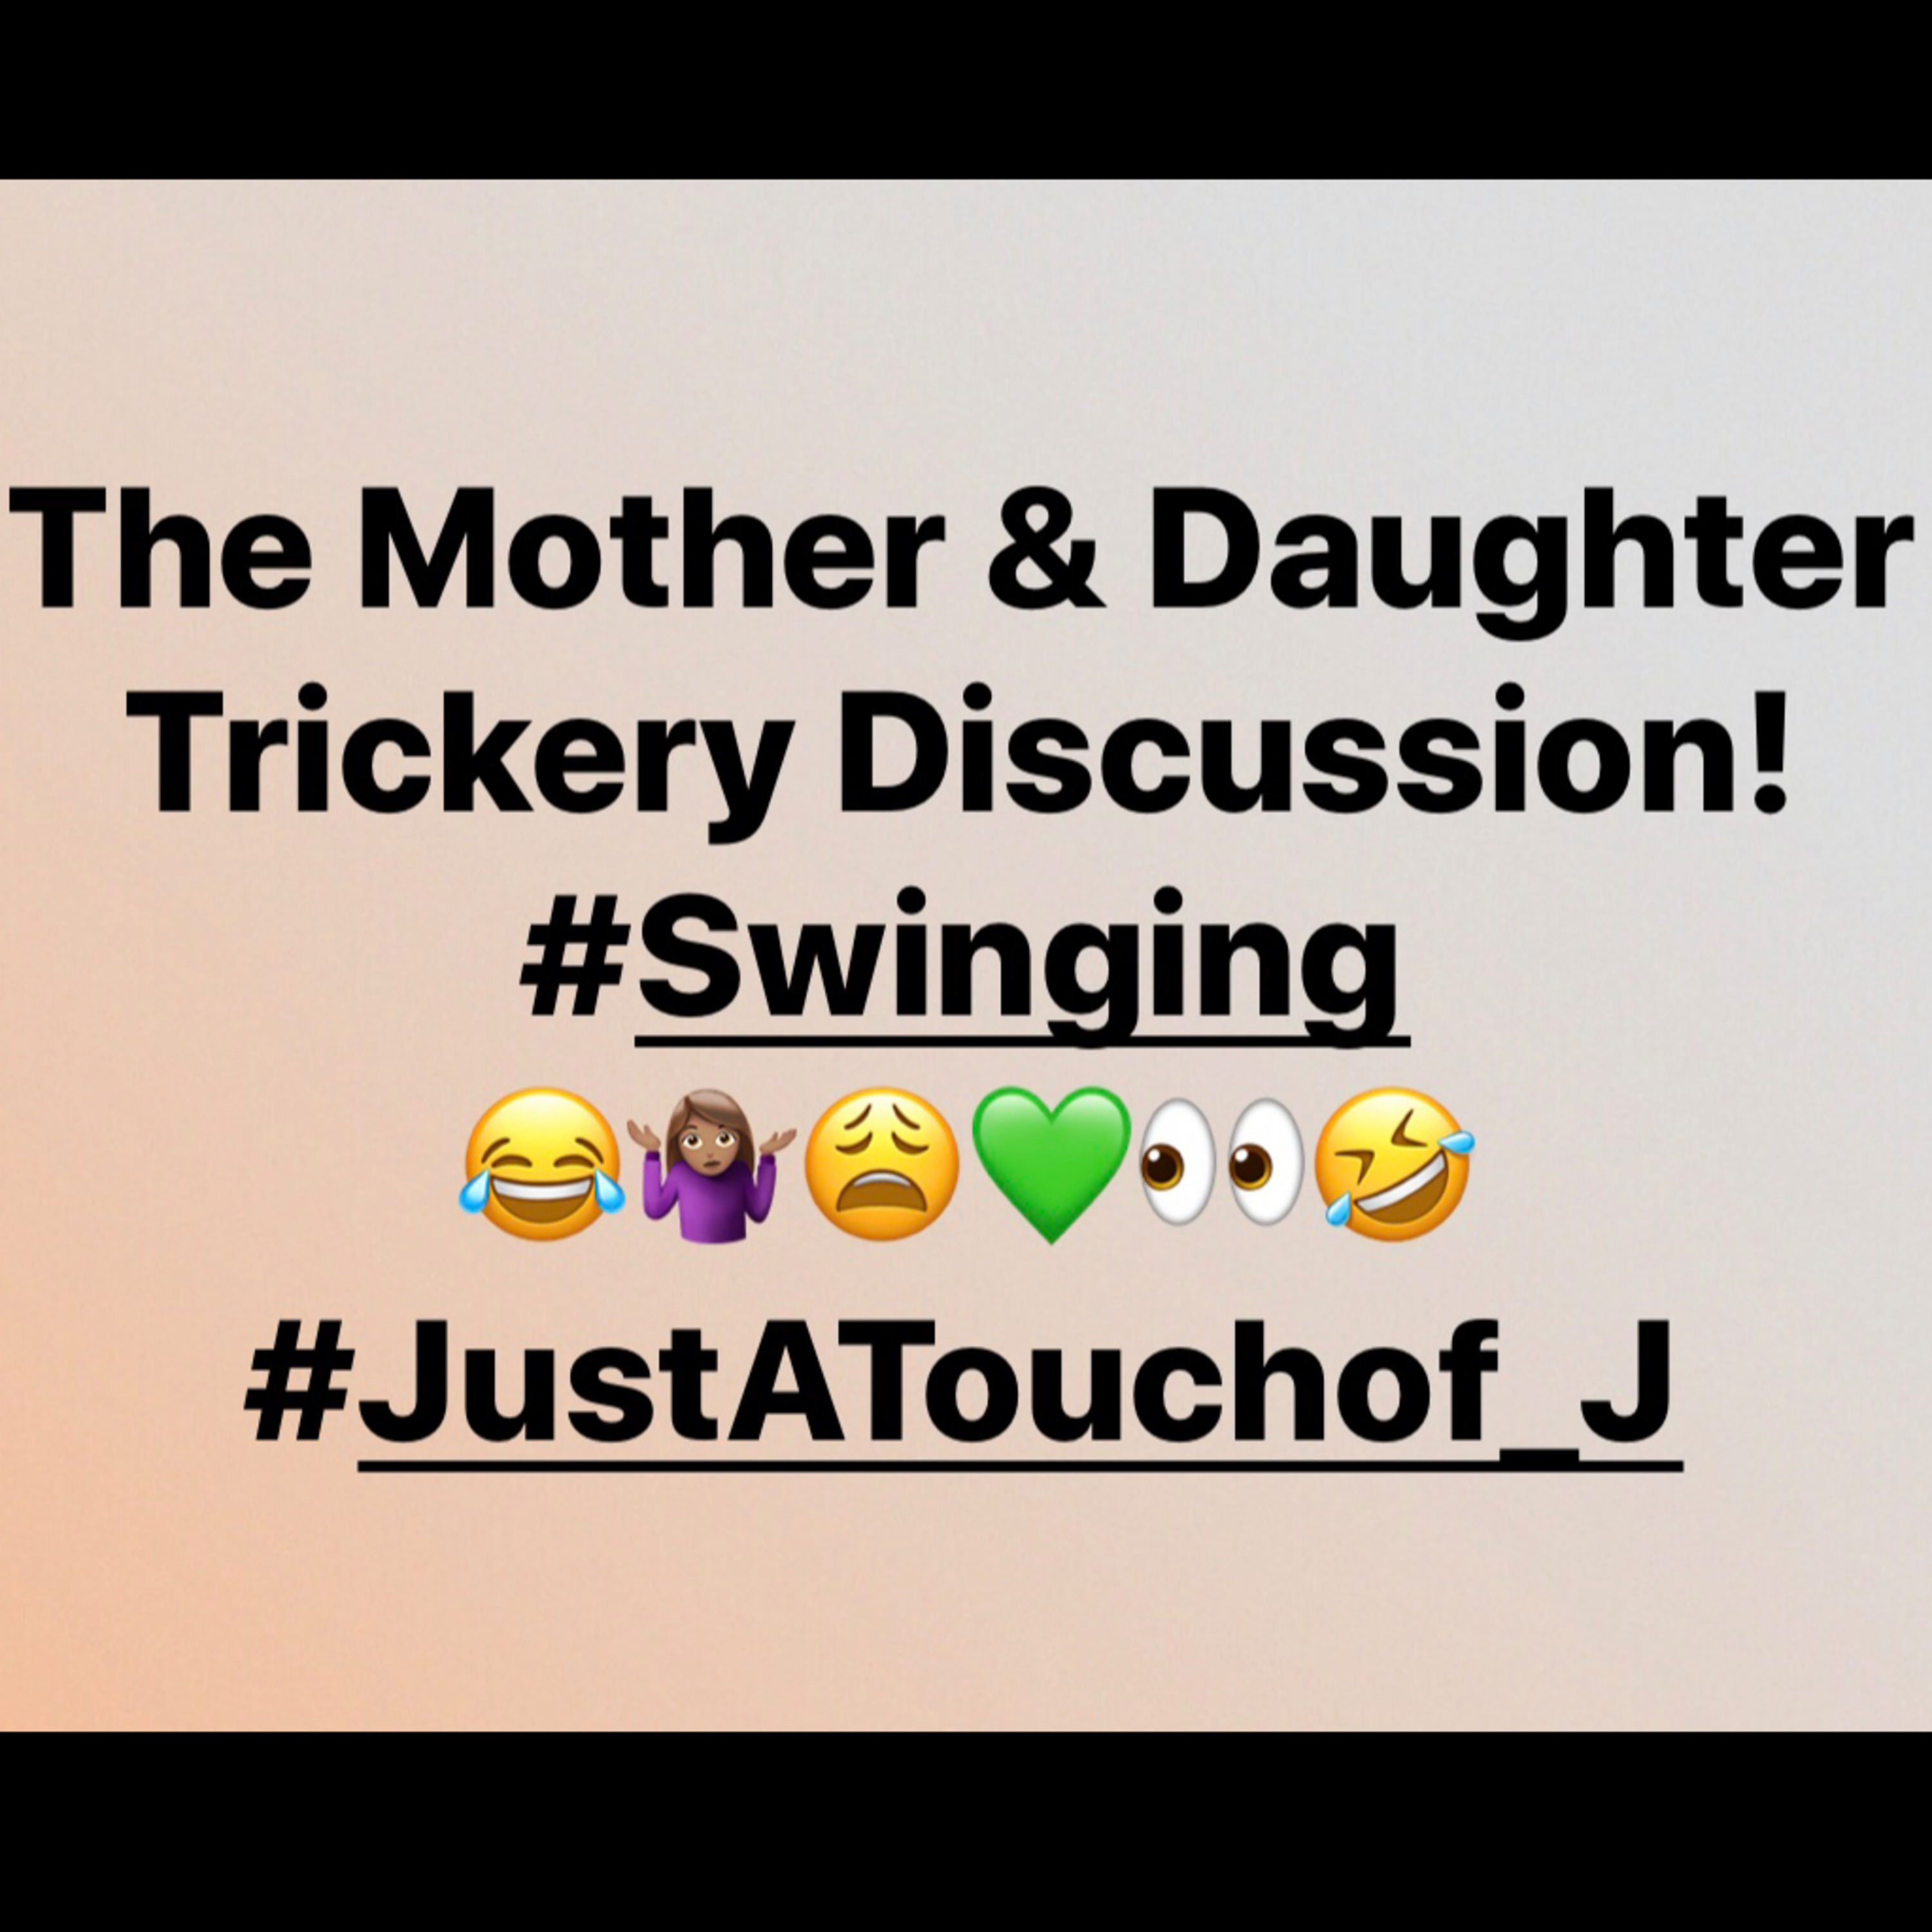 The Mother & Daughter Trickery Discussion! 😂🤷🏽♀️😩💚👀🤣 #Swinging 🤭👌🏾